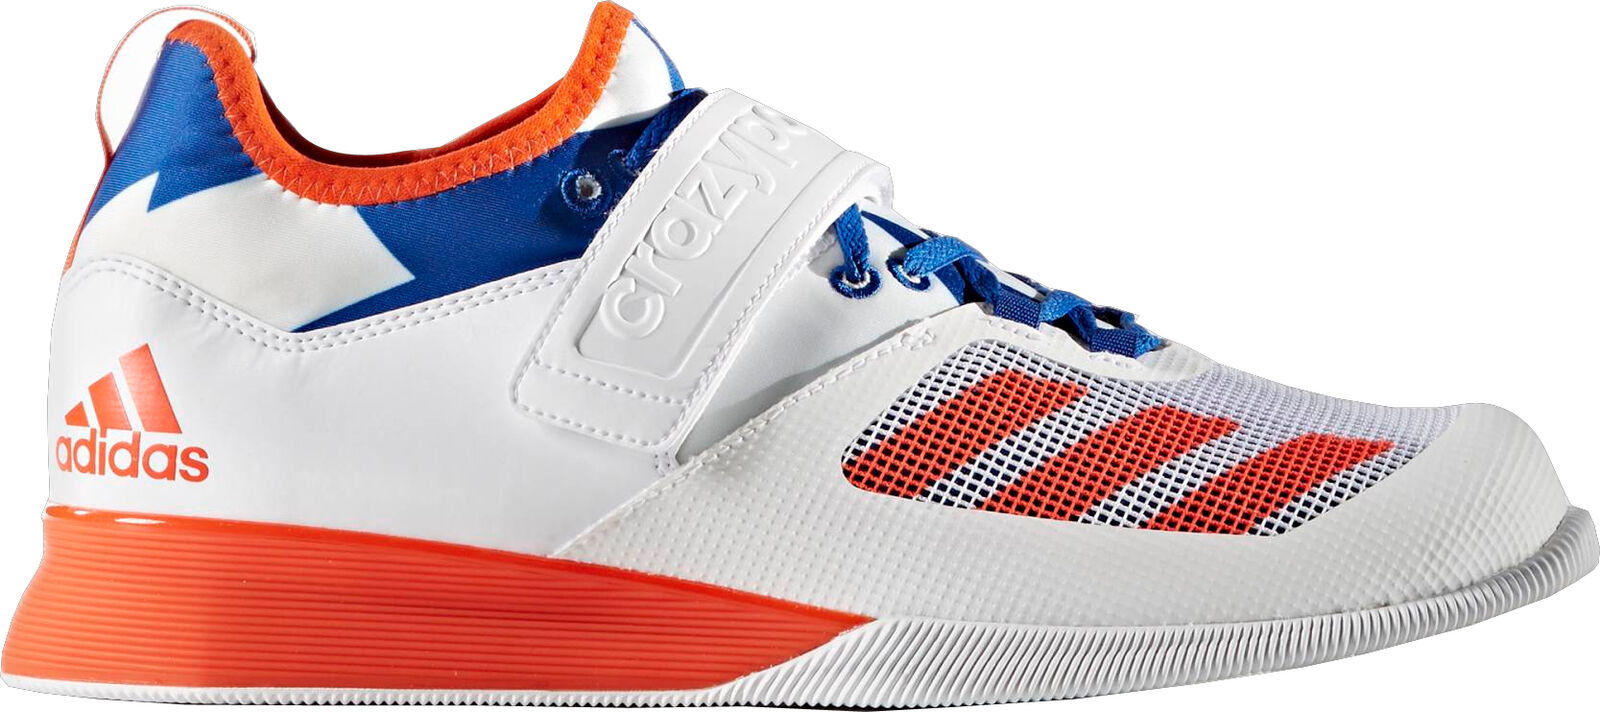 Adidas Crazy Power  Mens Crossfit shoes - White  quality product